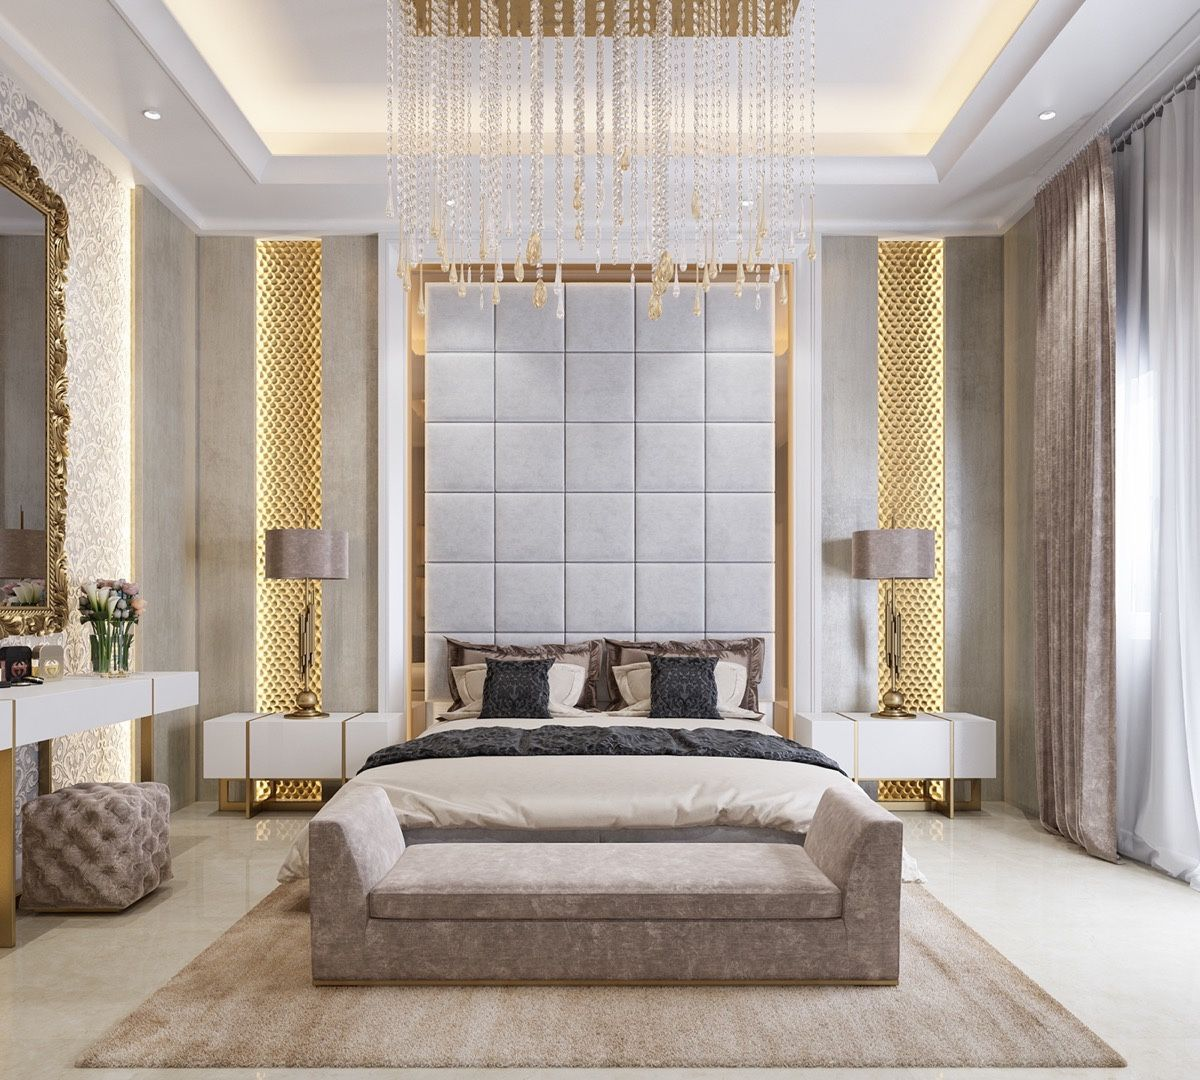 Stylish Bedroom Design For Your Future Home || Get Relaxed In One Of The  Finest